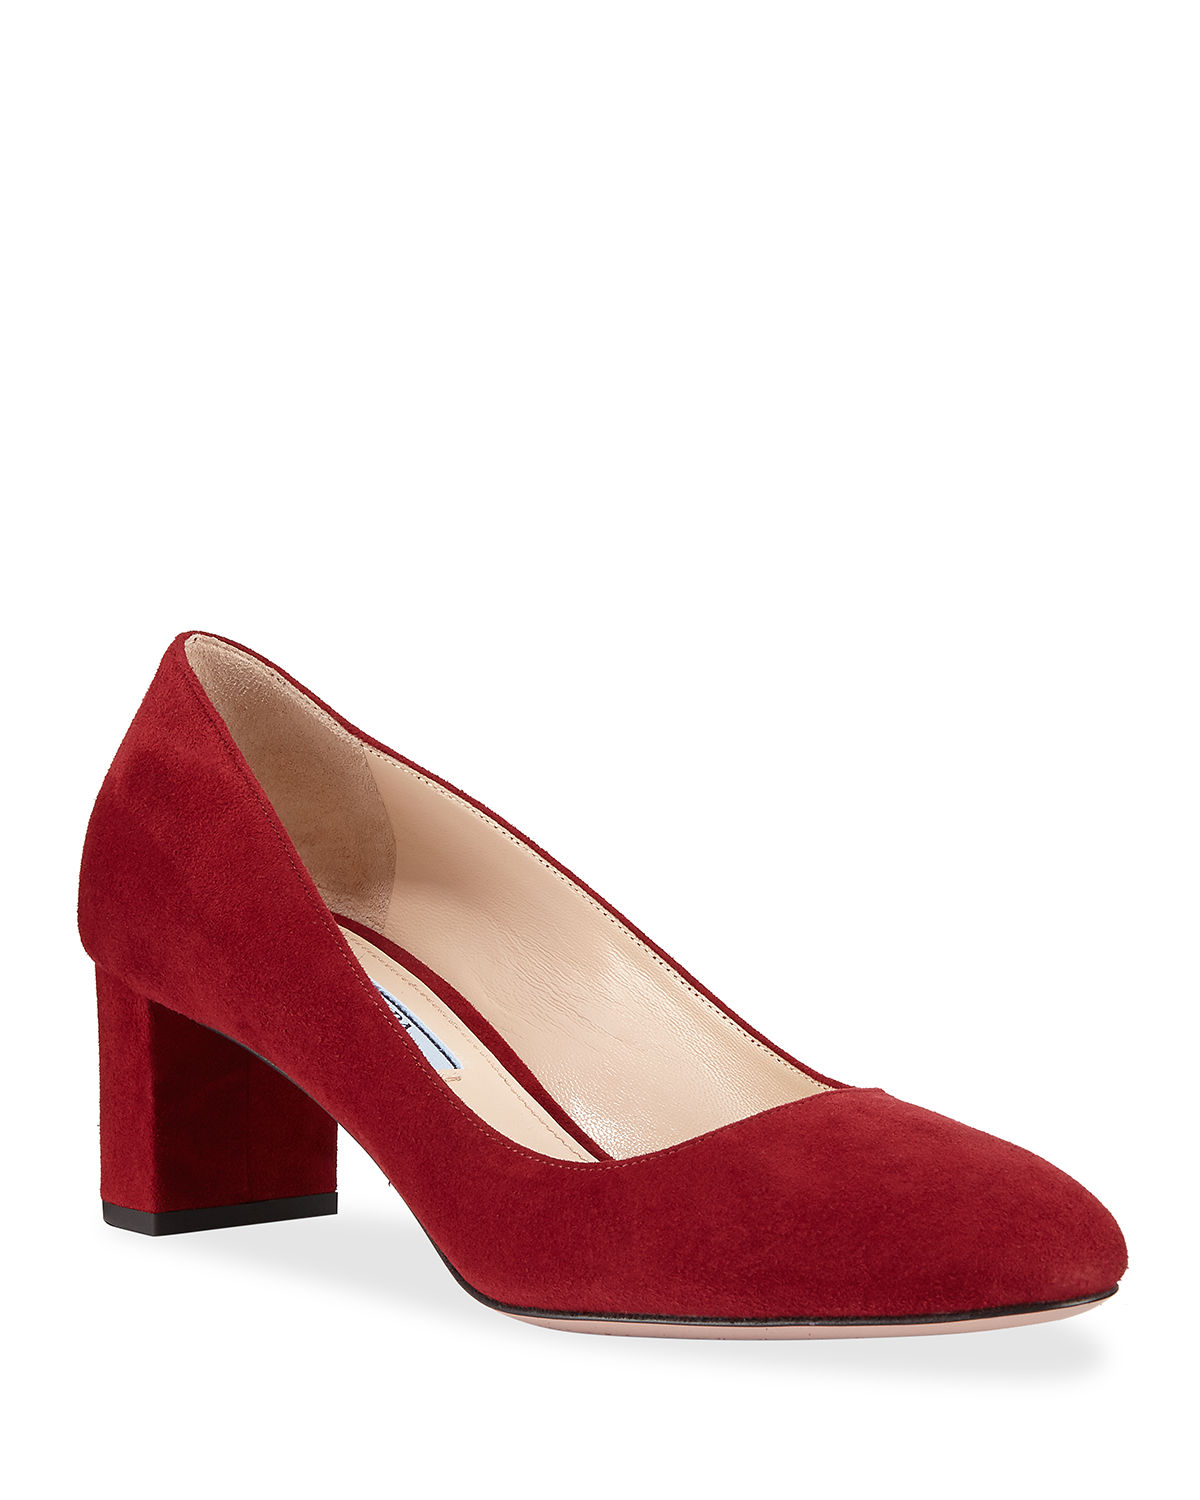 4186f9f93ba Prada Suede 55mm Block-Heel Pump